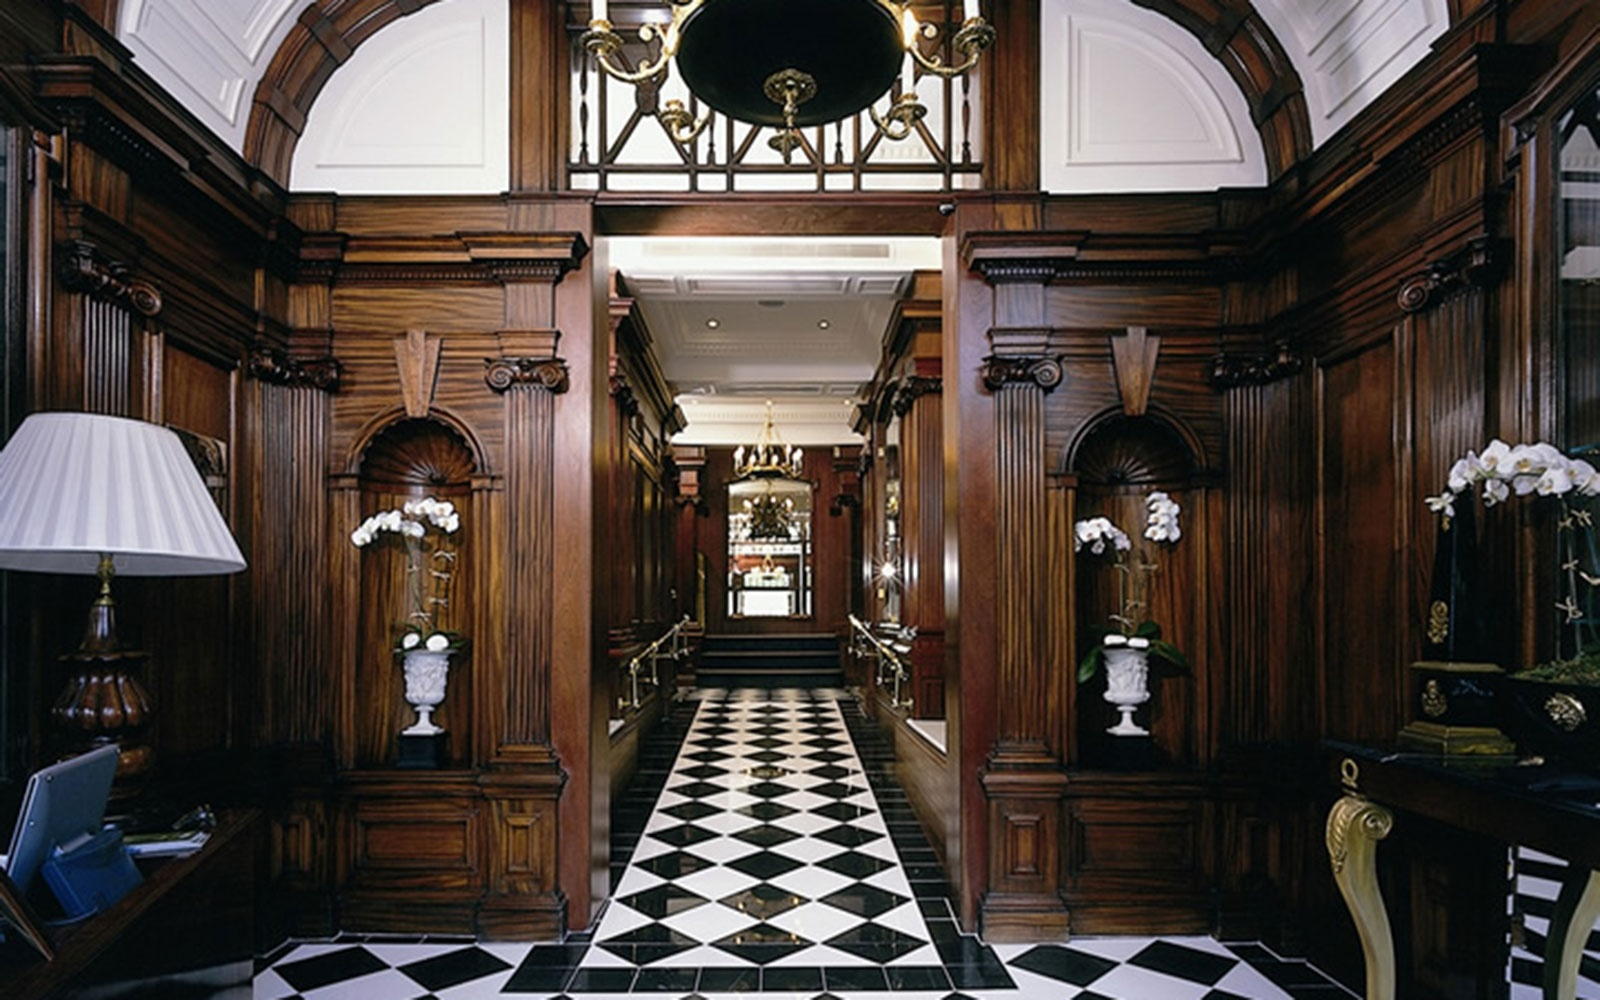 entrance hall at Hotel 41 in London, England